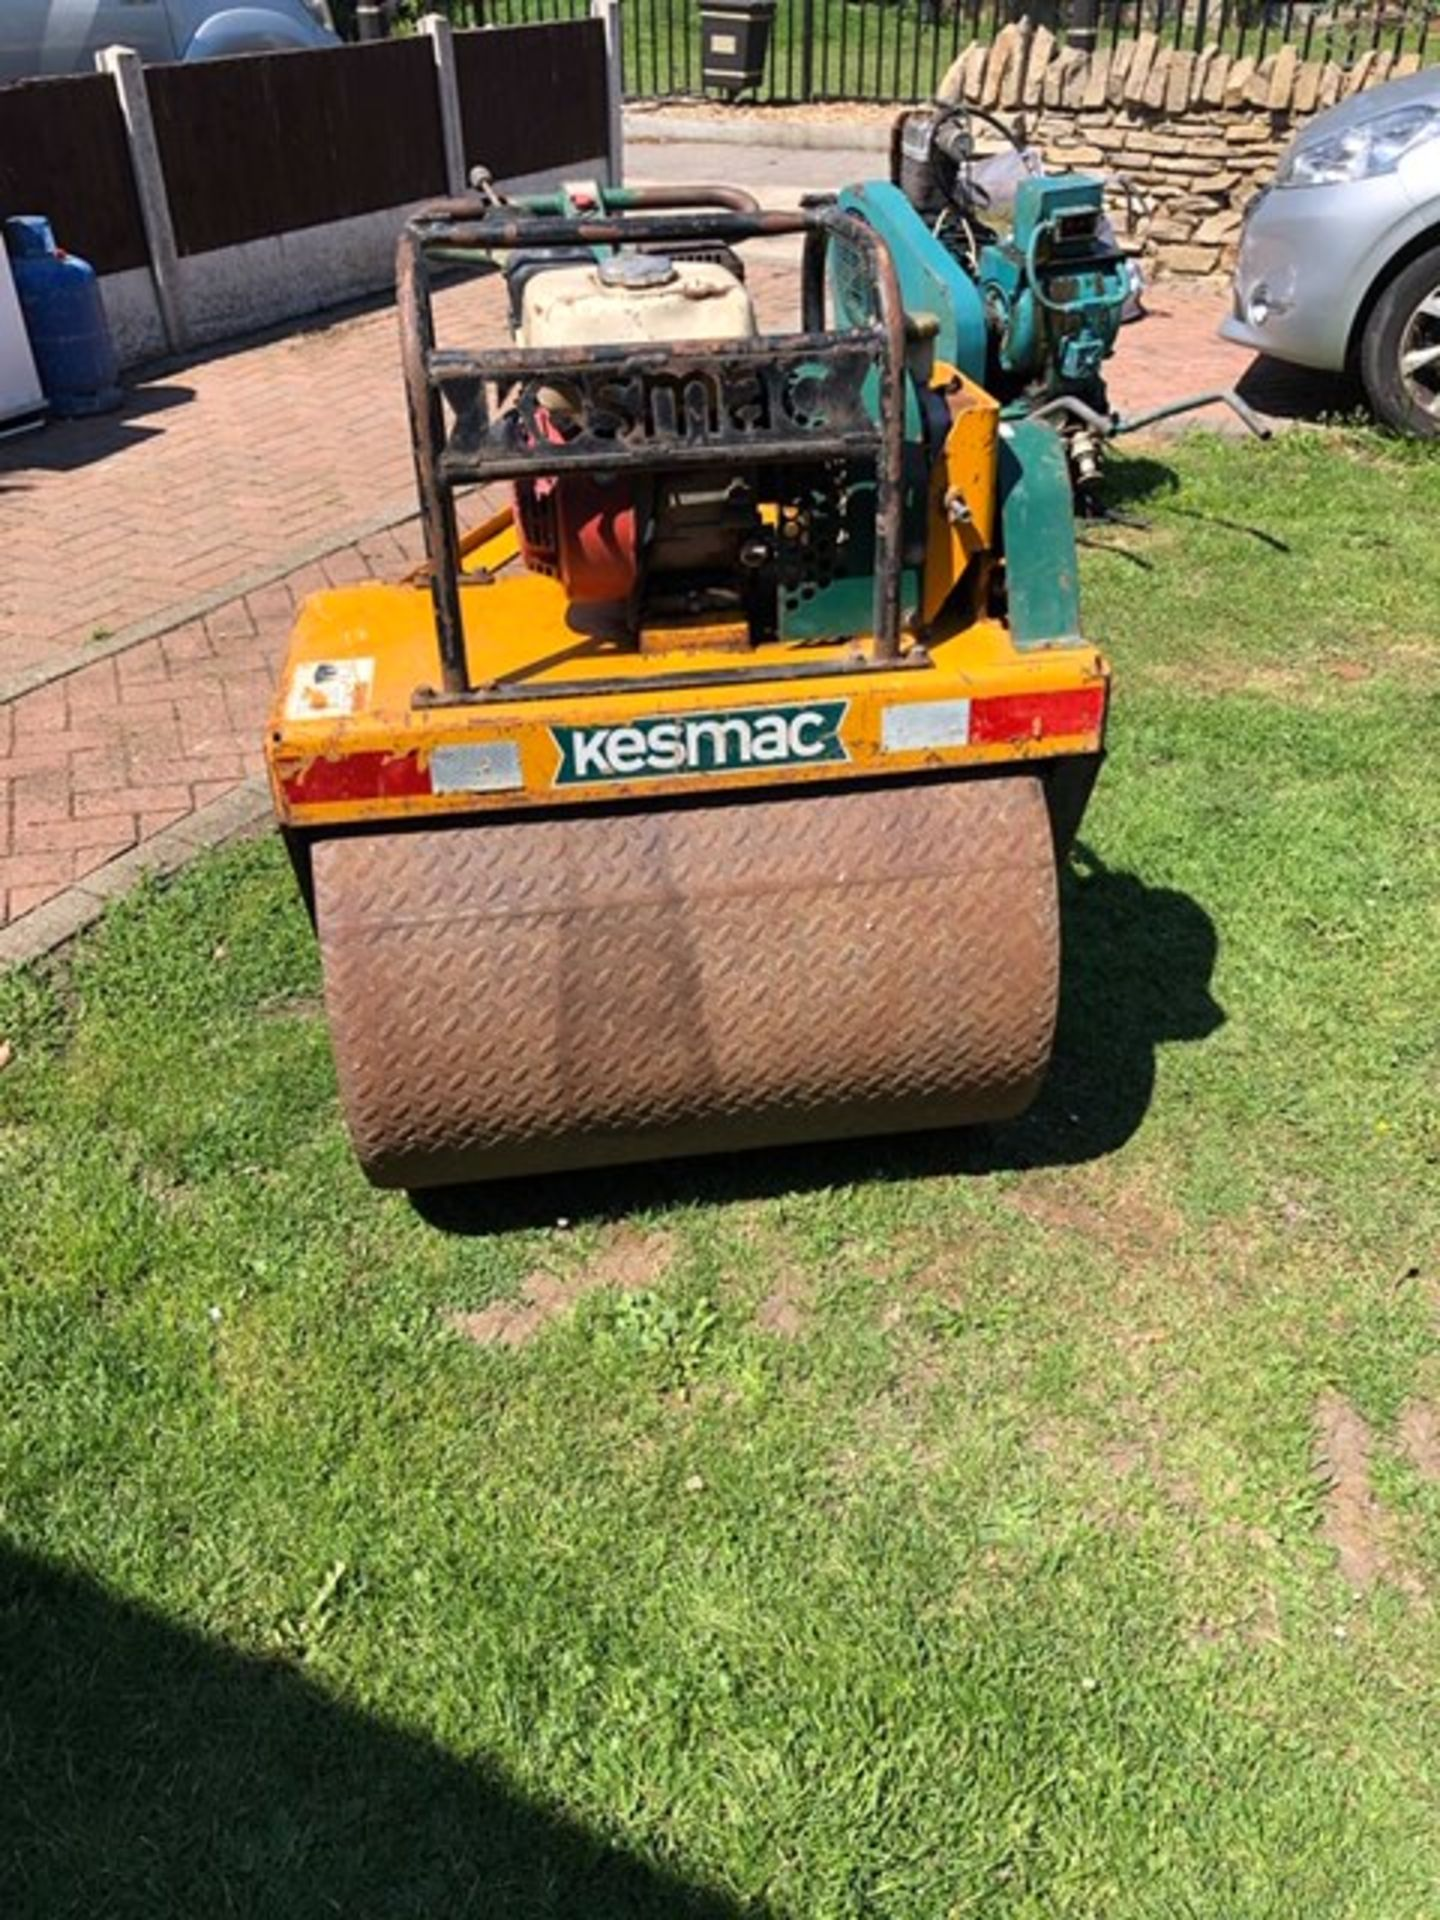 Lot 259 - KESMAC HONDA ENGINED ROLLER FOR GREEN KEEPER ETC. WHEN TESTED WAS SEEN TO RUN AND DRIVE